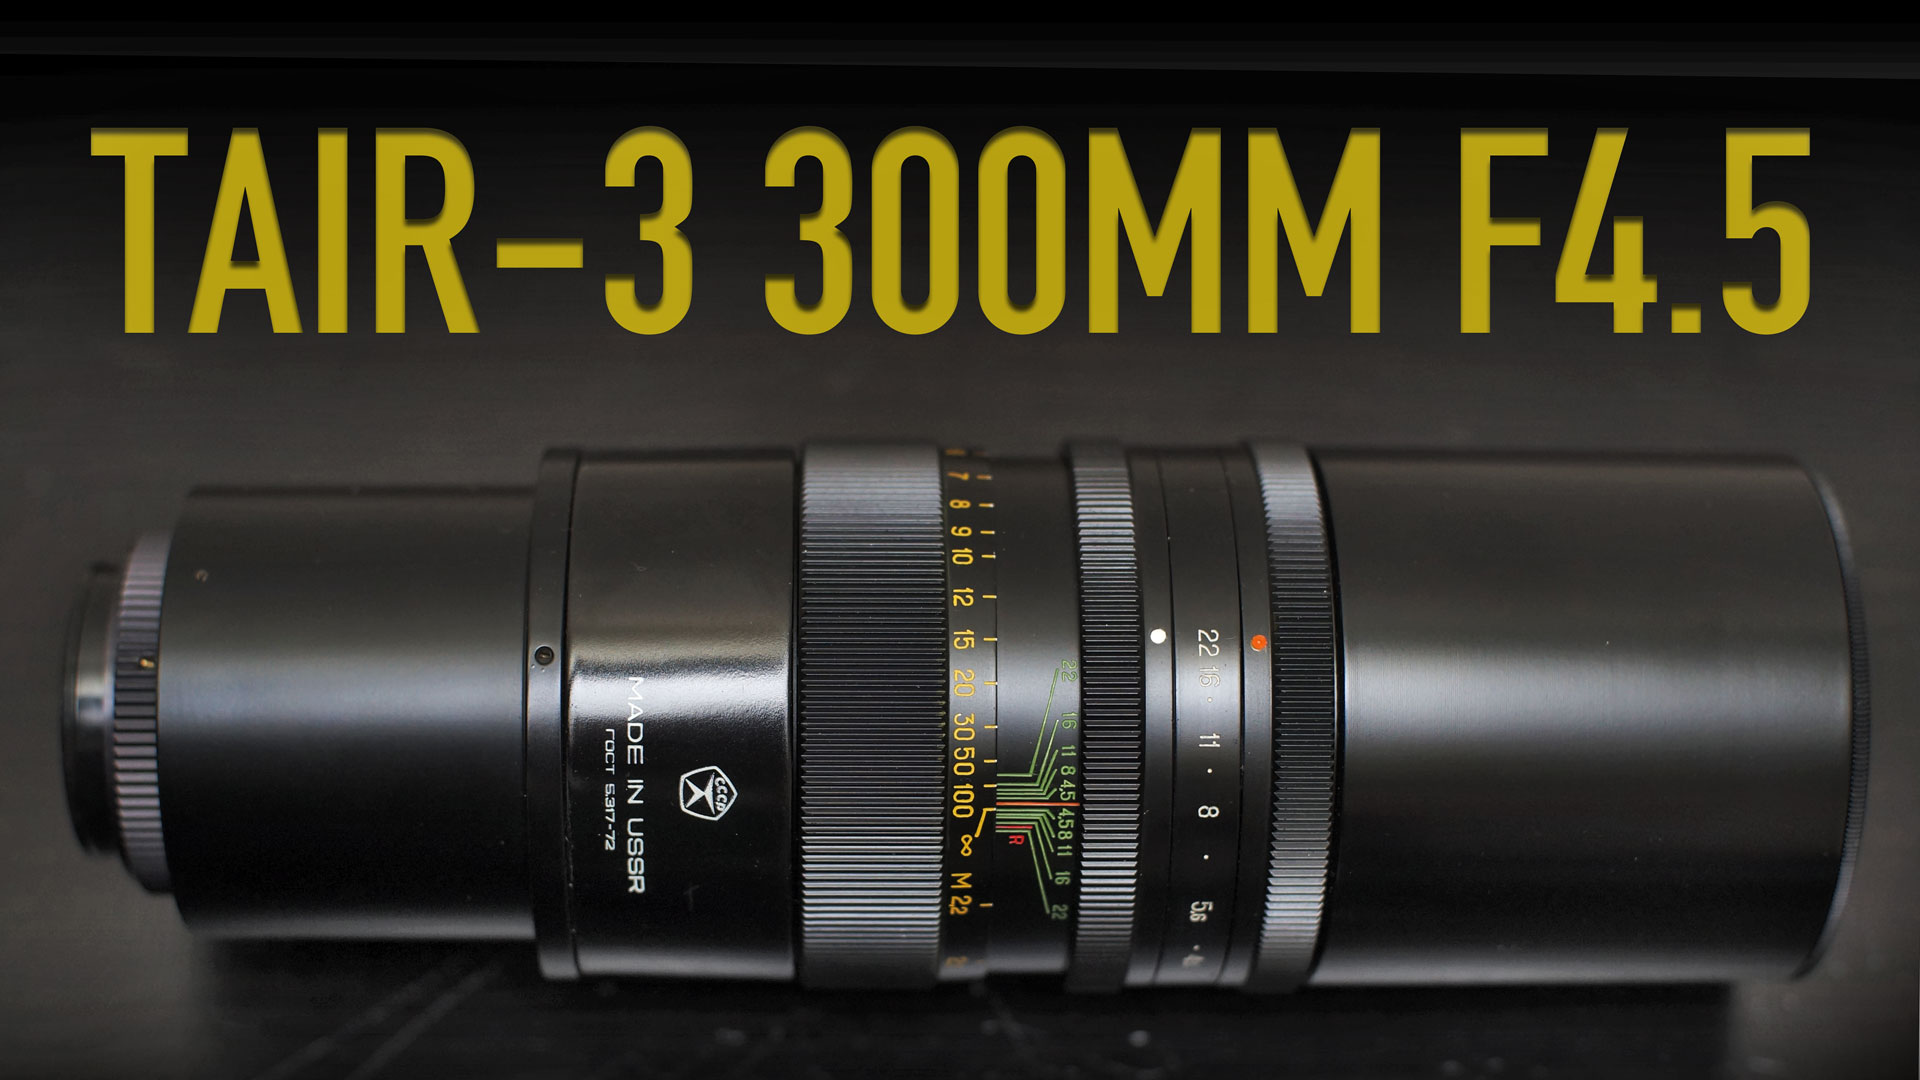 The Russian Tank | TAIR-3 300mm F4.5 Review